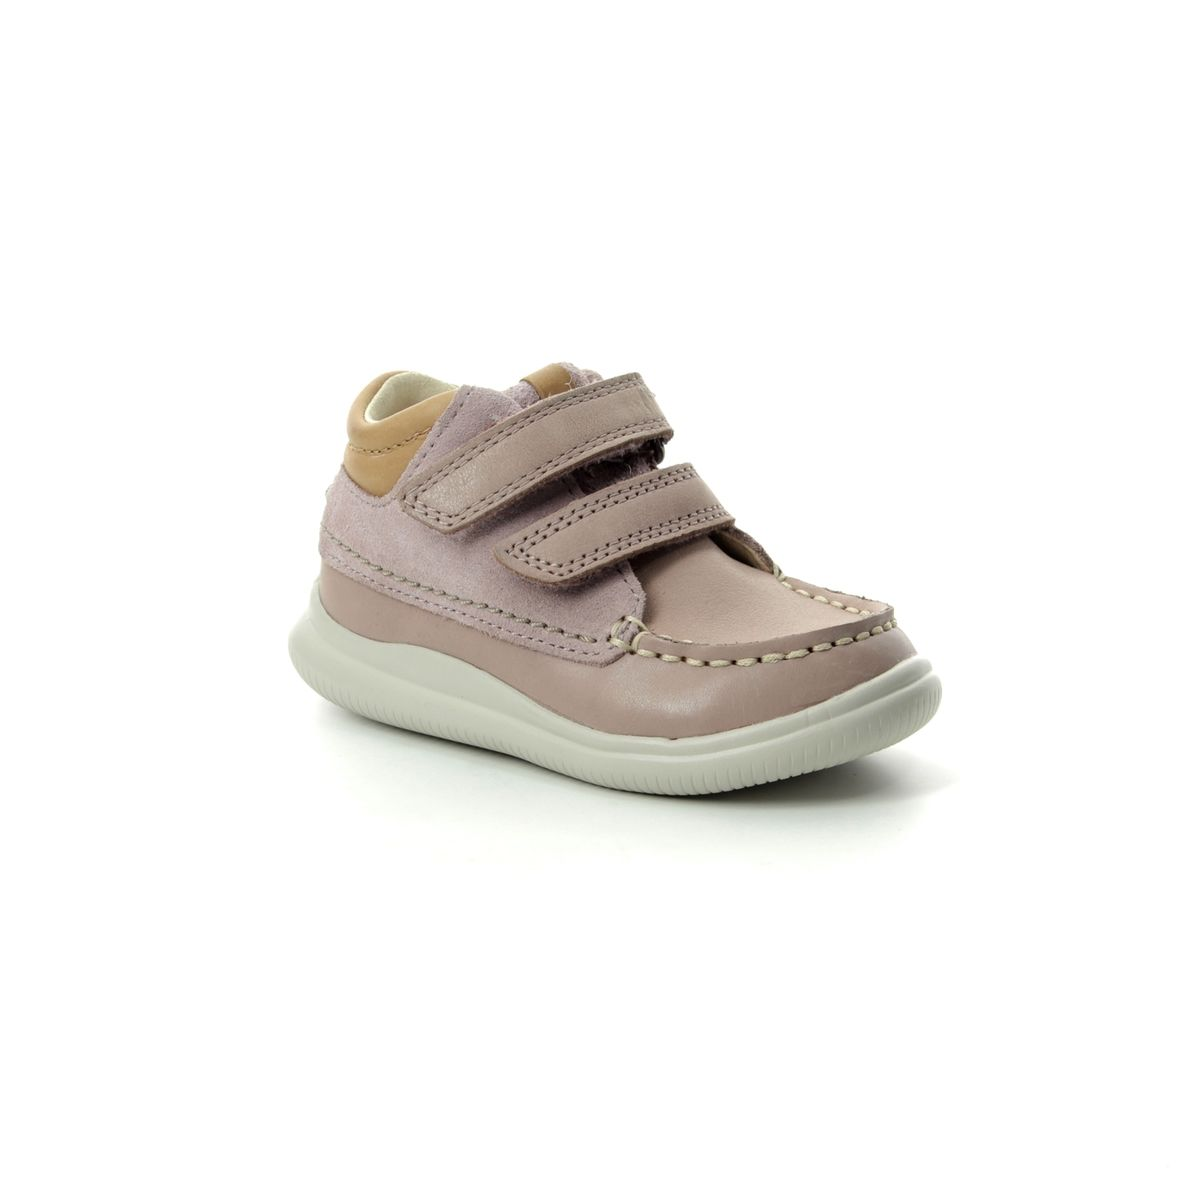 ba1e78bc7587b4 Clarks First Shoes - Pink Leather - 3580 46F CLOUD TUKTU